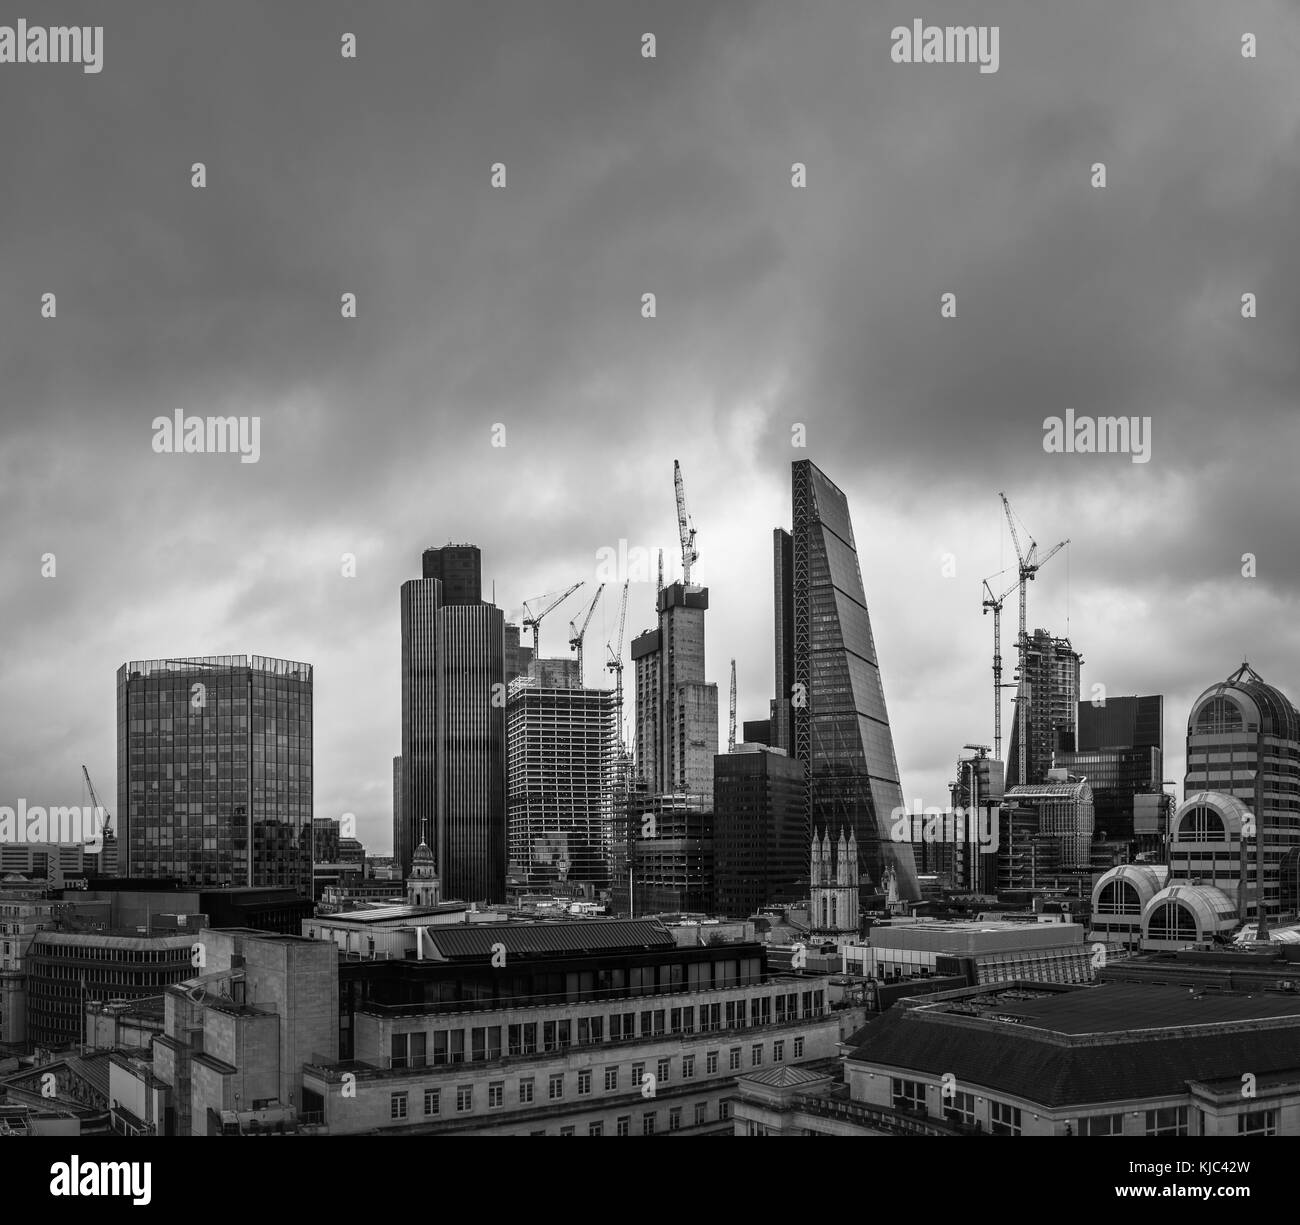 City of London, London, UK, 26th October 2017.  Dark clouds gather over iconic modern buildings on the skyline of - Stock Image